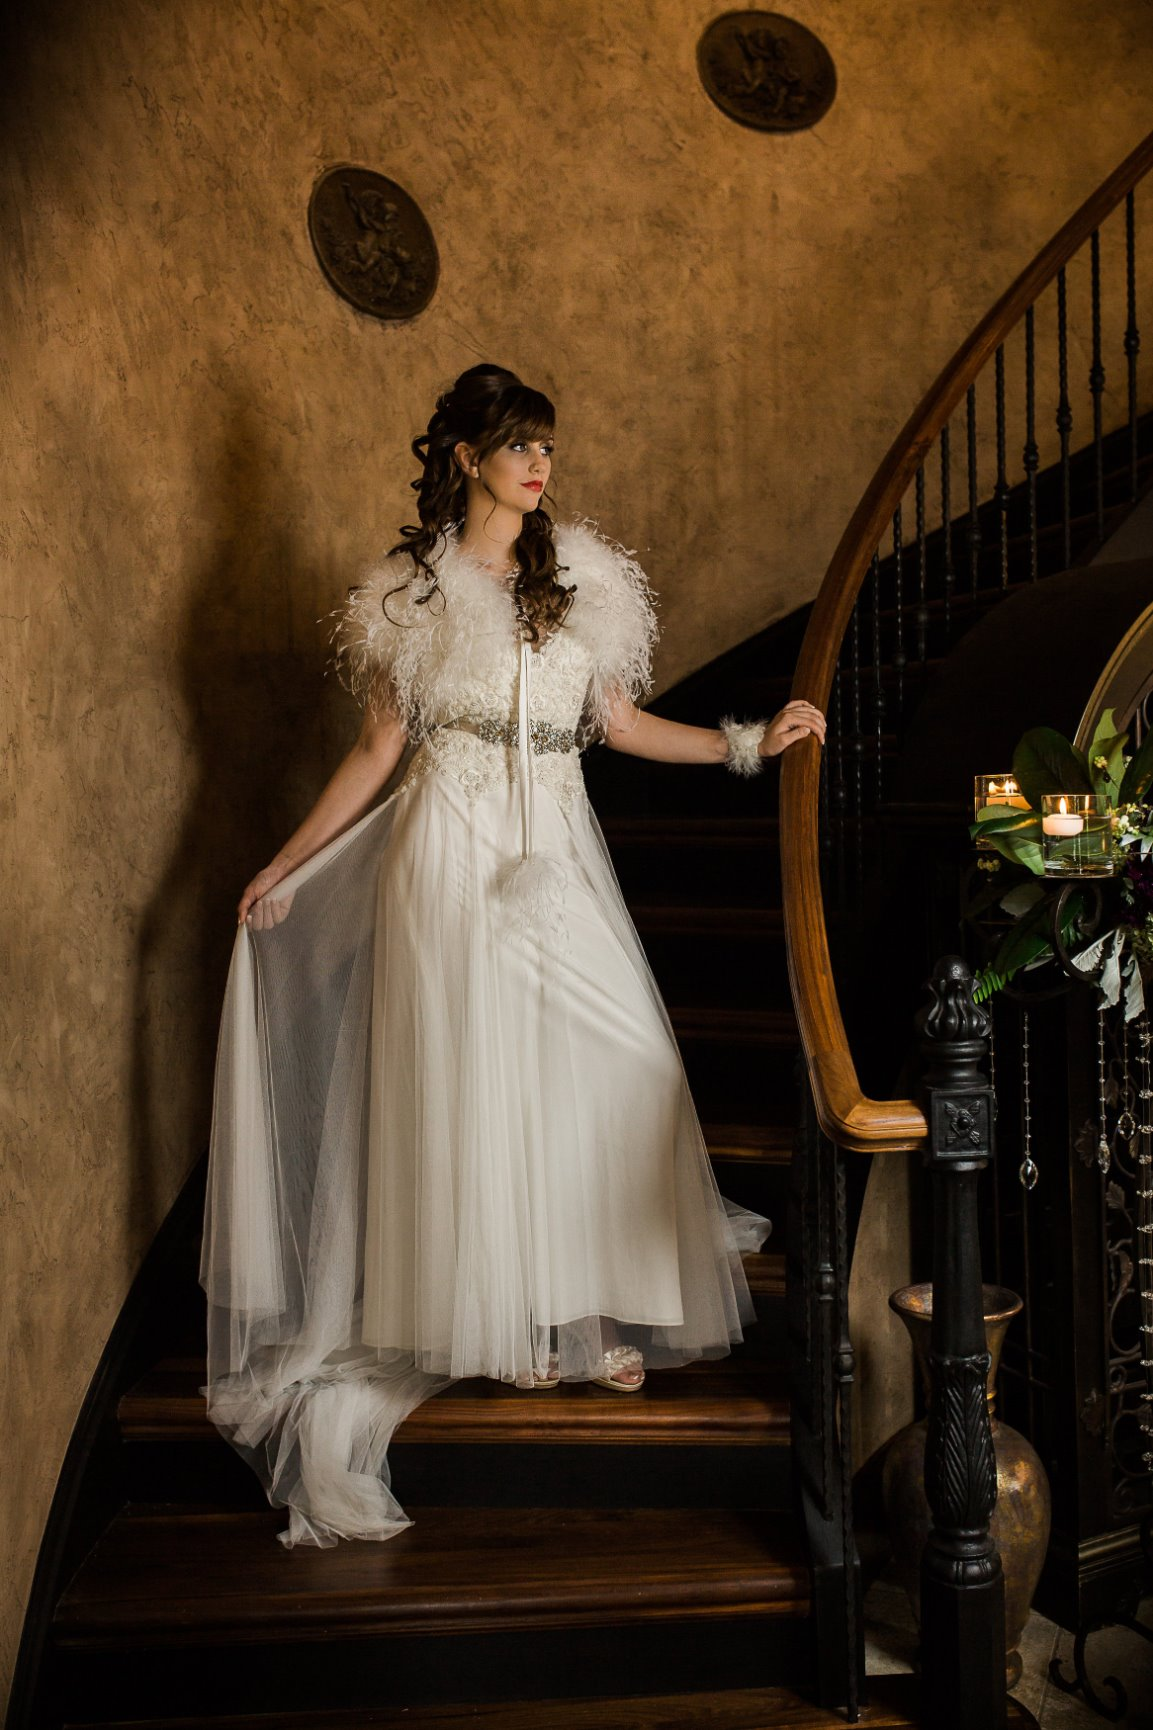 Bride in the Stairwell